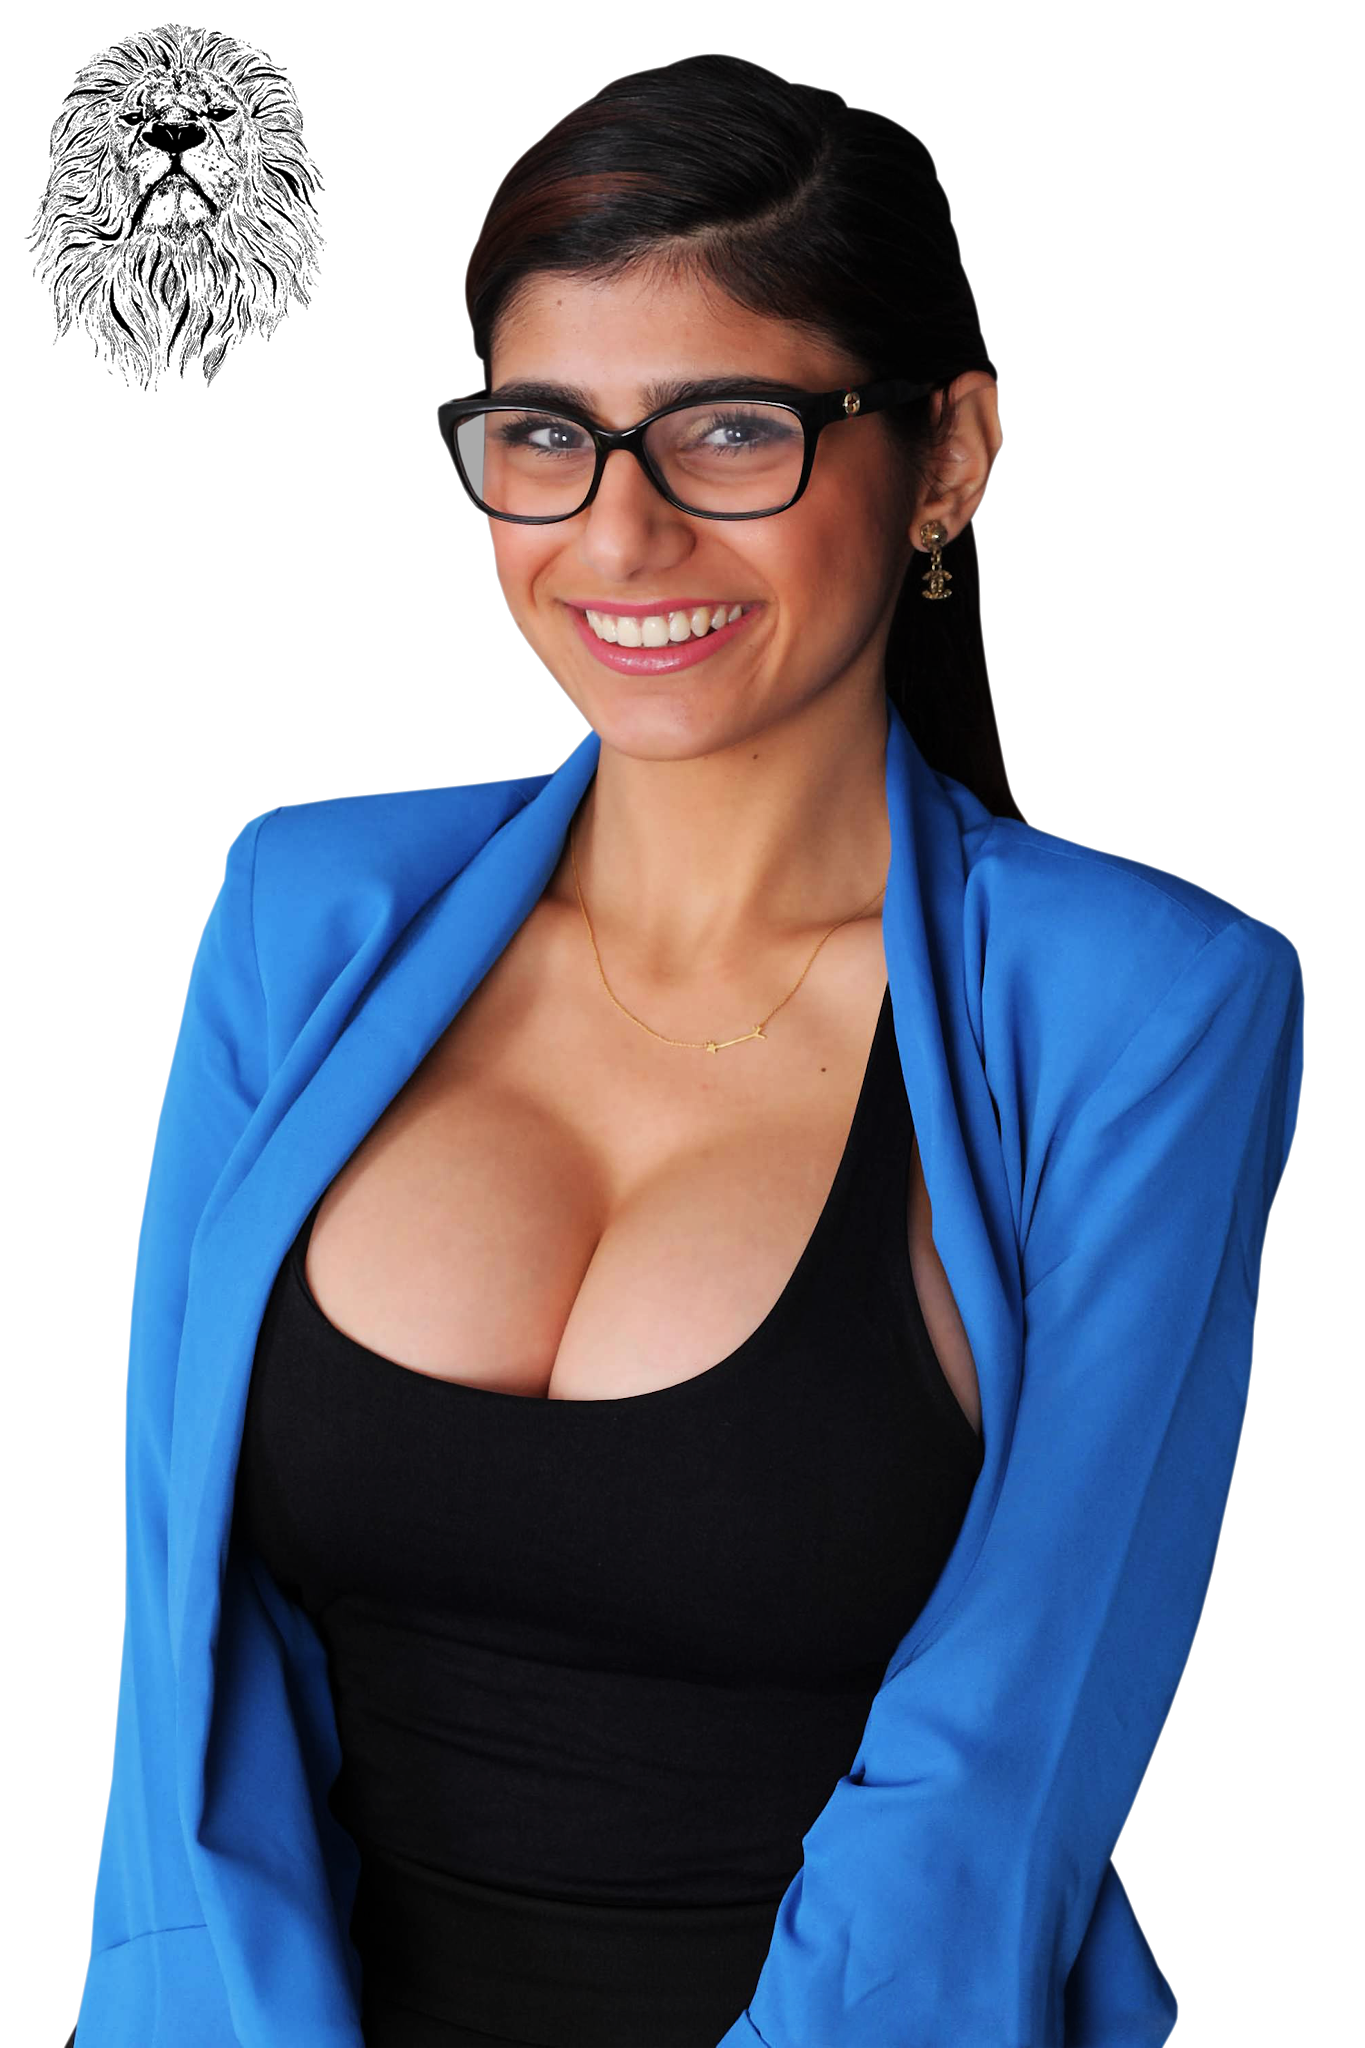 Models - Mia Khalifa - Means Business (5)